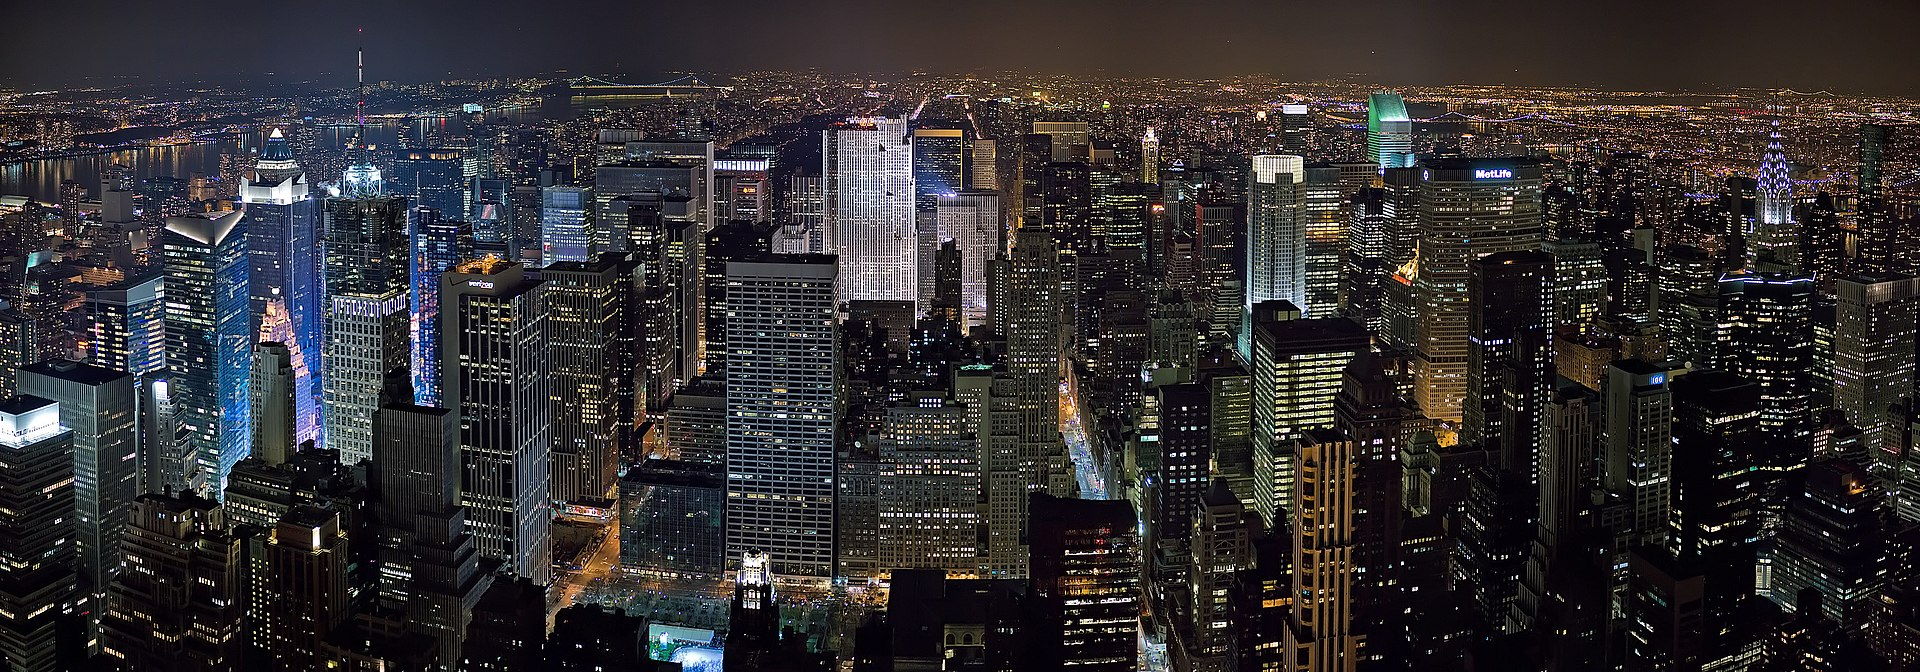 Panaromic view of Midtown Manhattan from the Empire State Building